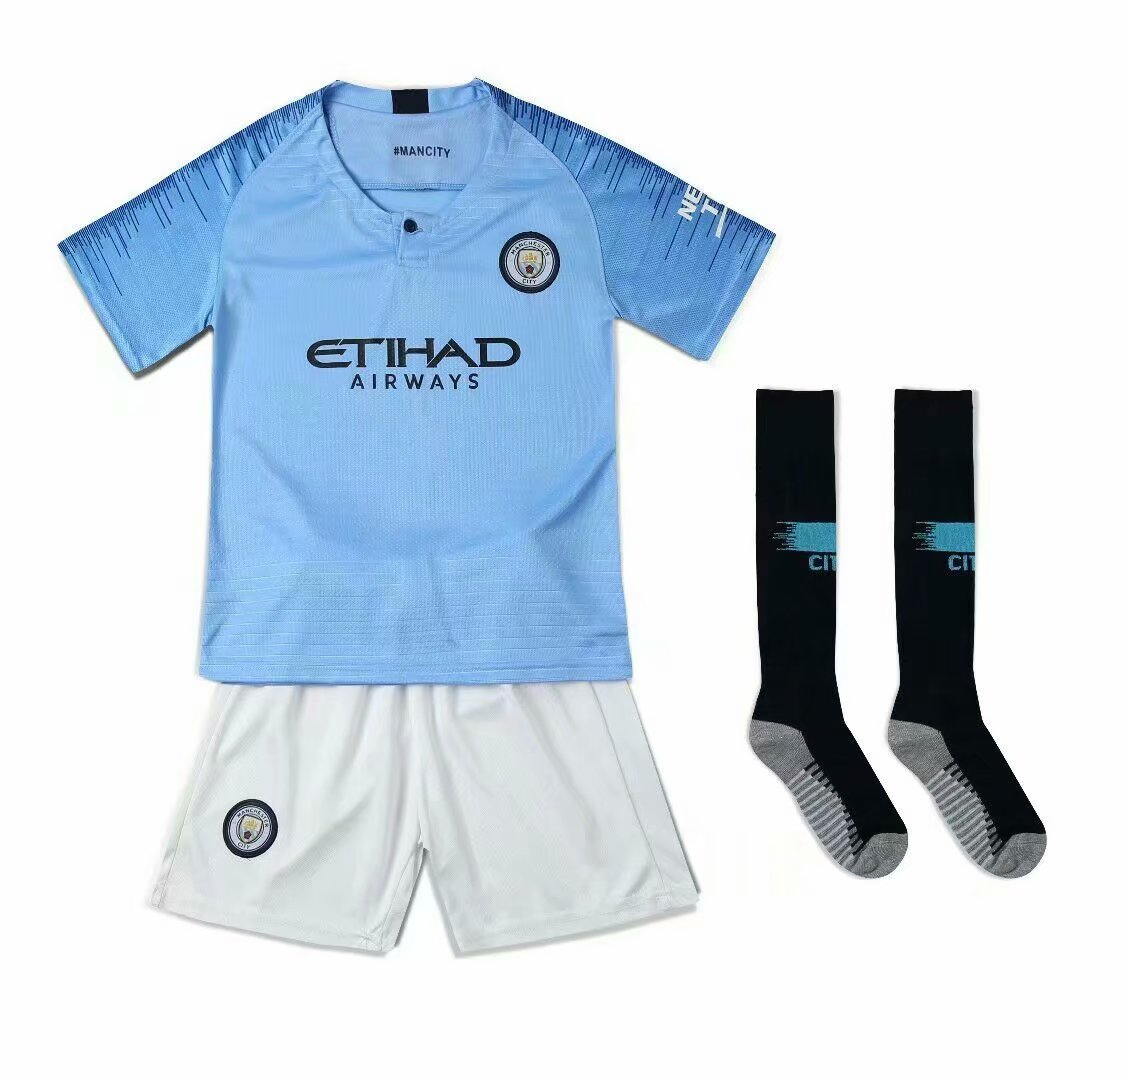 wholesale dealer b6d45 c6a32 2018/19 Kids Manchester City Home Without Brand Logo Soccer Kits Children  Football Uniform